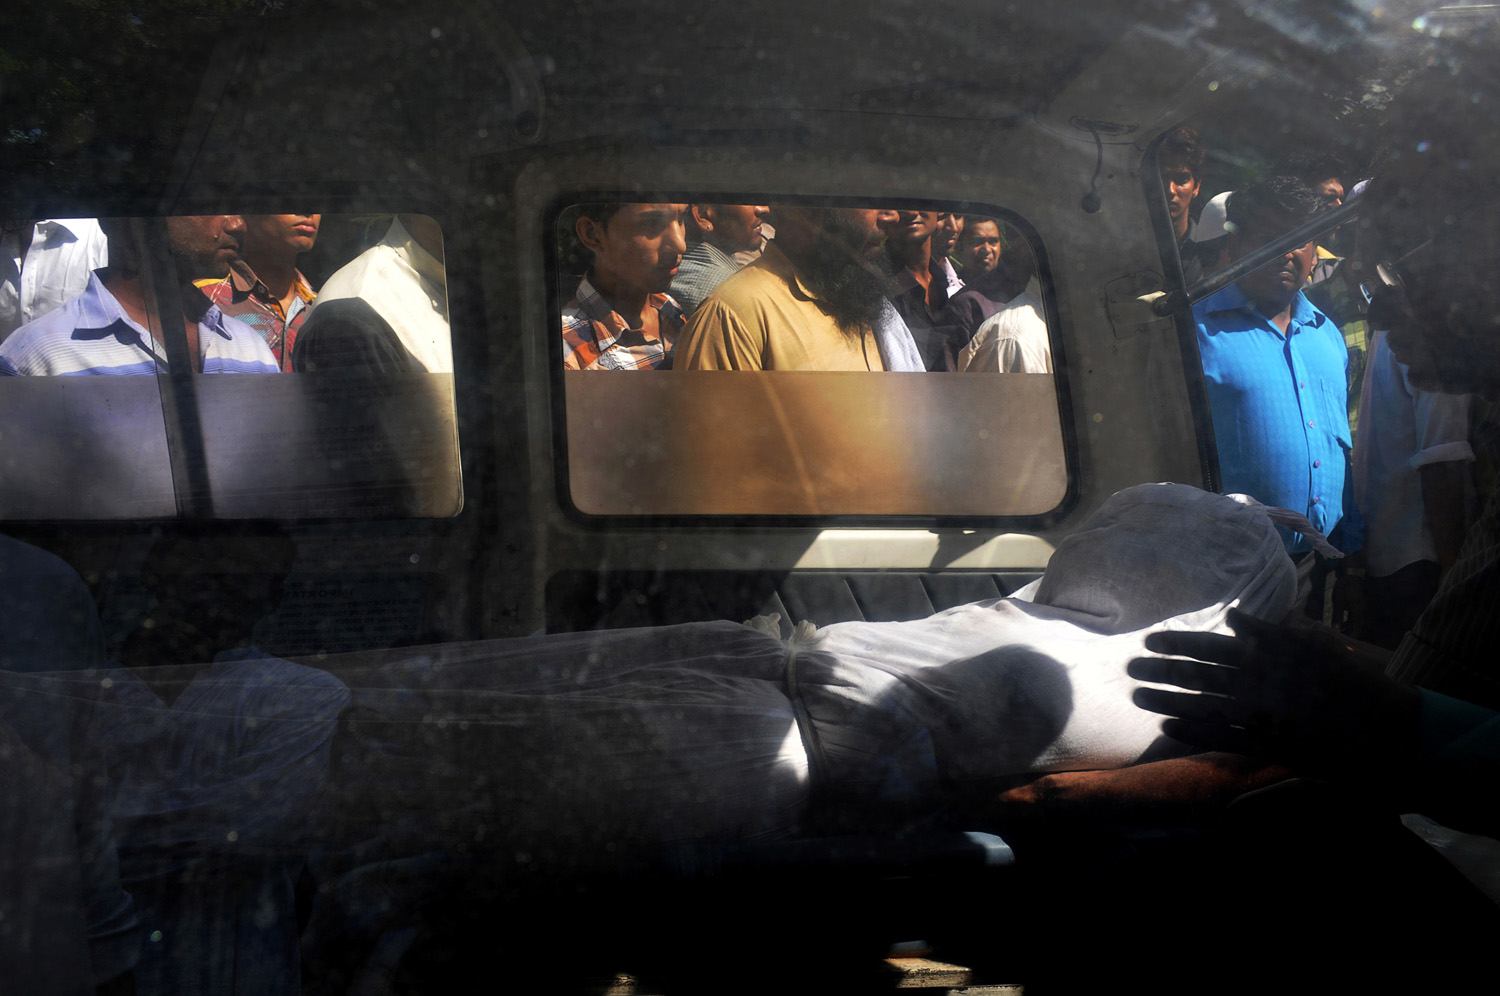 September 28, 2011. The body of a victim of a building collapse lies inside an ambulance outside a mortuary in New Delhi, India. Broken beams and mounds of clay lay in heaps where a three-story residential building collapsed in the Indian capital, killing at least seven people and highlighting the dangerous housing conditions among the city's poor.